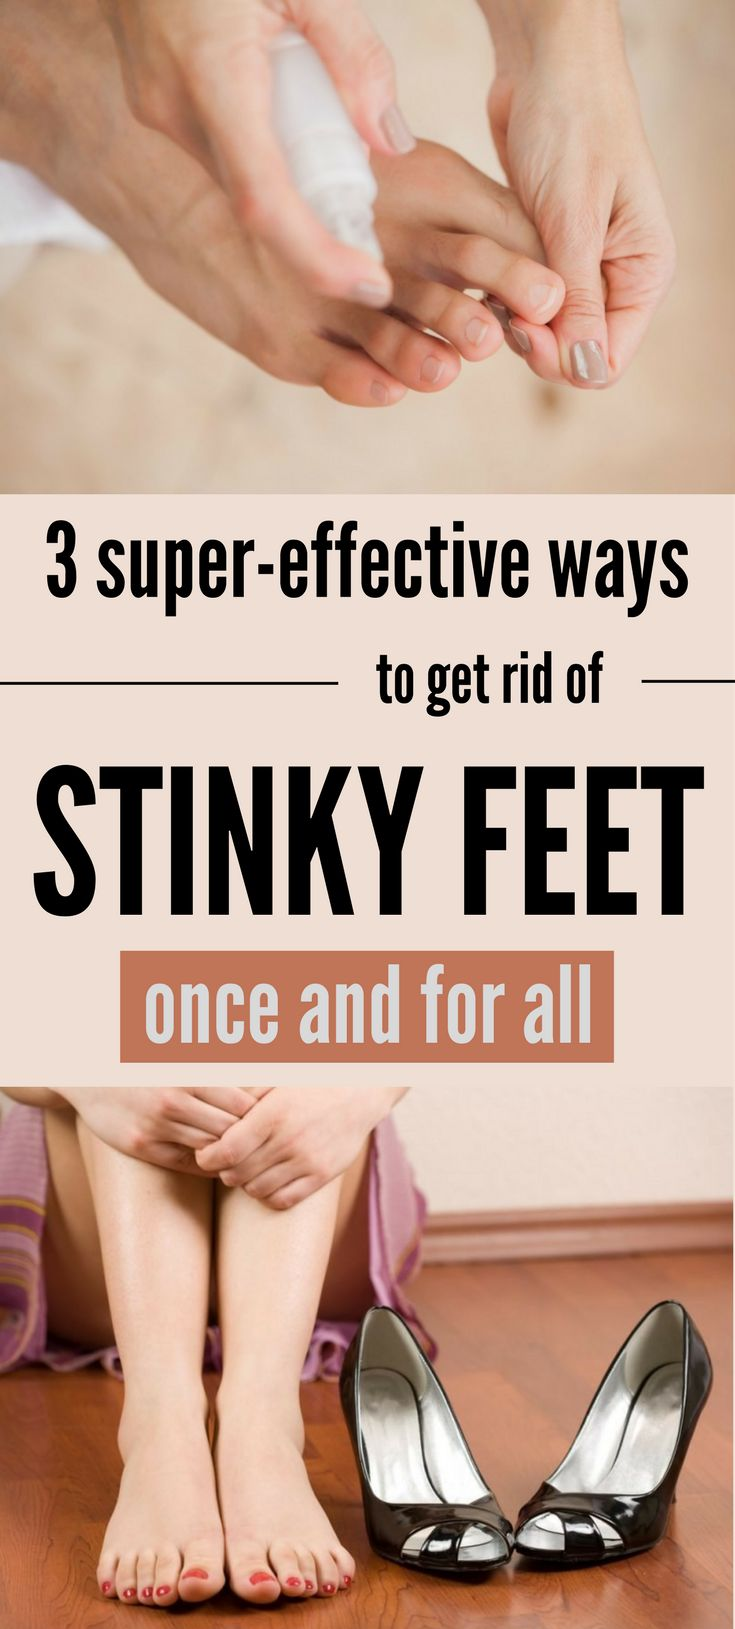 3 Super-Effective Ways to Get Rid of Stinky Feet Once and For All